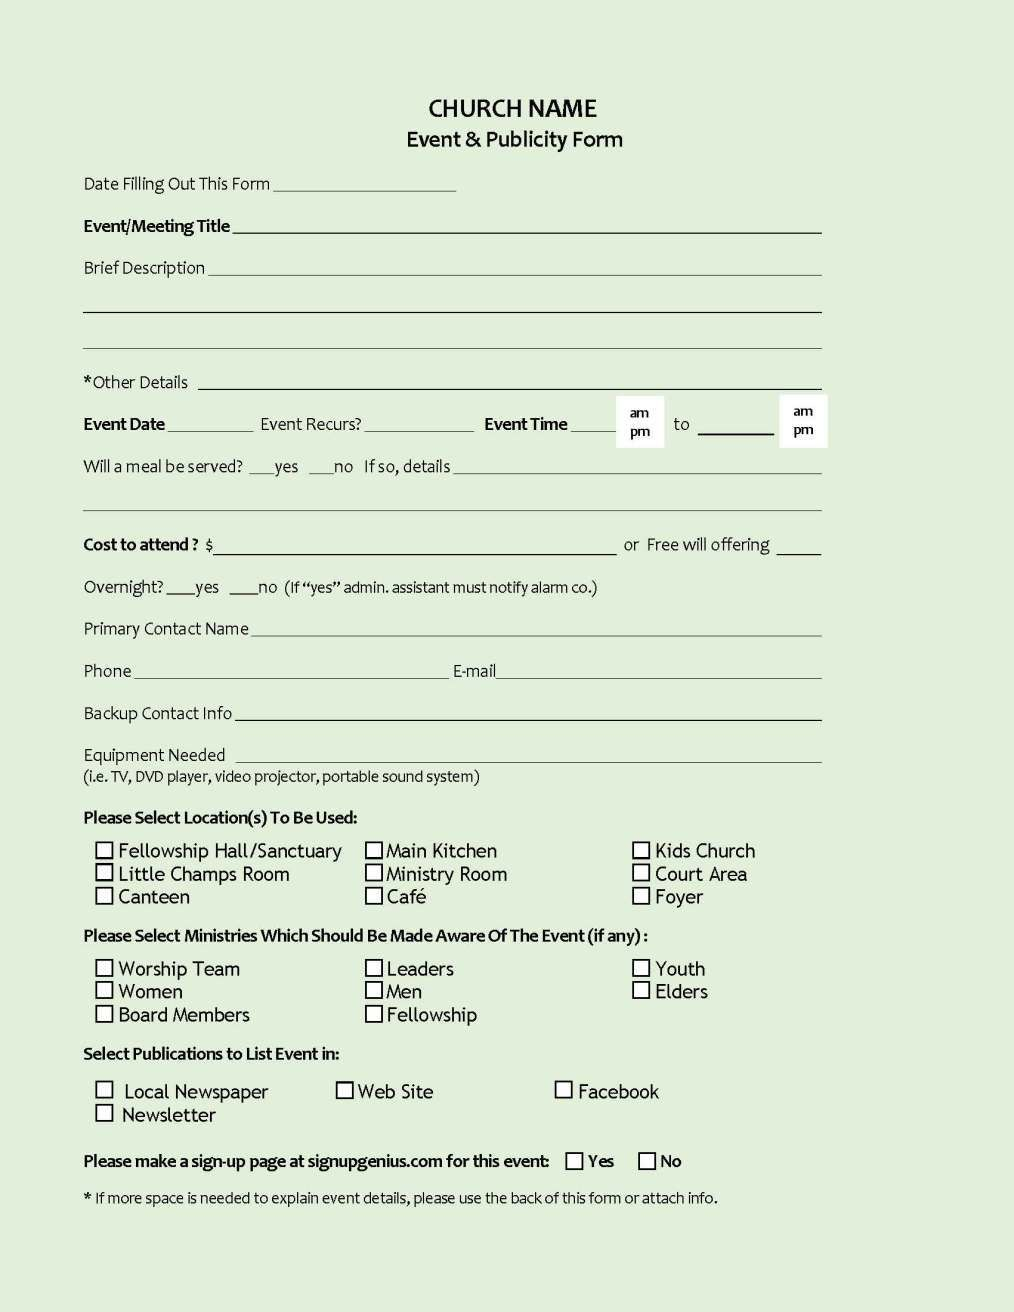 Event Publicity Form  Shahdat  Event Planning Checklist Event Inside Ministry Proposal Template